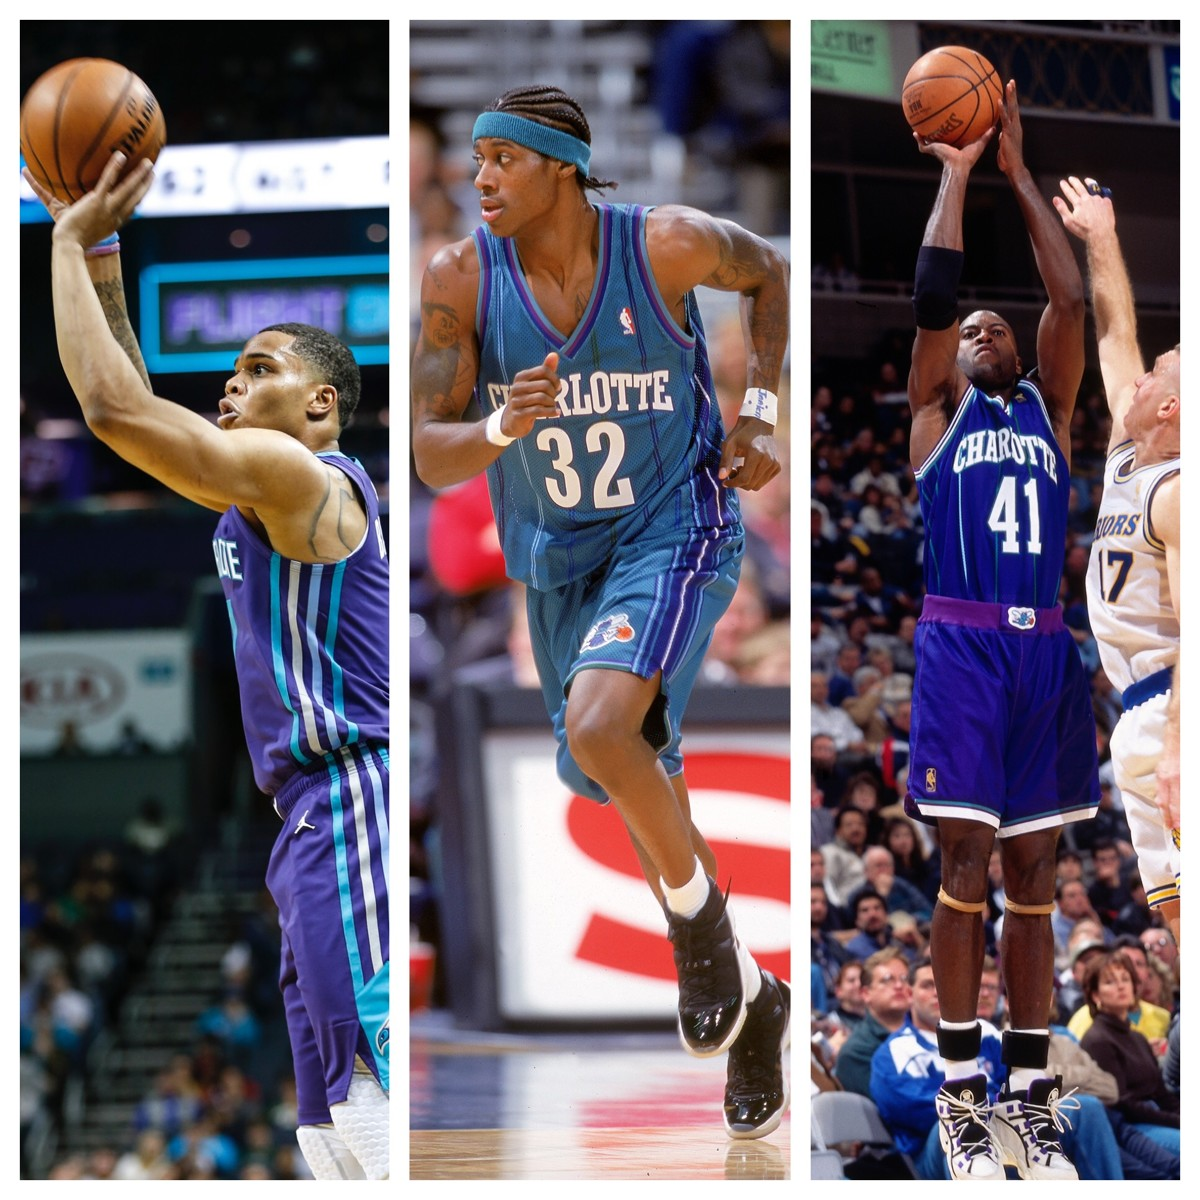 0332eb2c6416 Charlotte rookie Miles Bridges continues hometown tradition of ex-Hornets  players Glen Rice